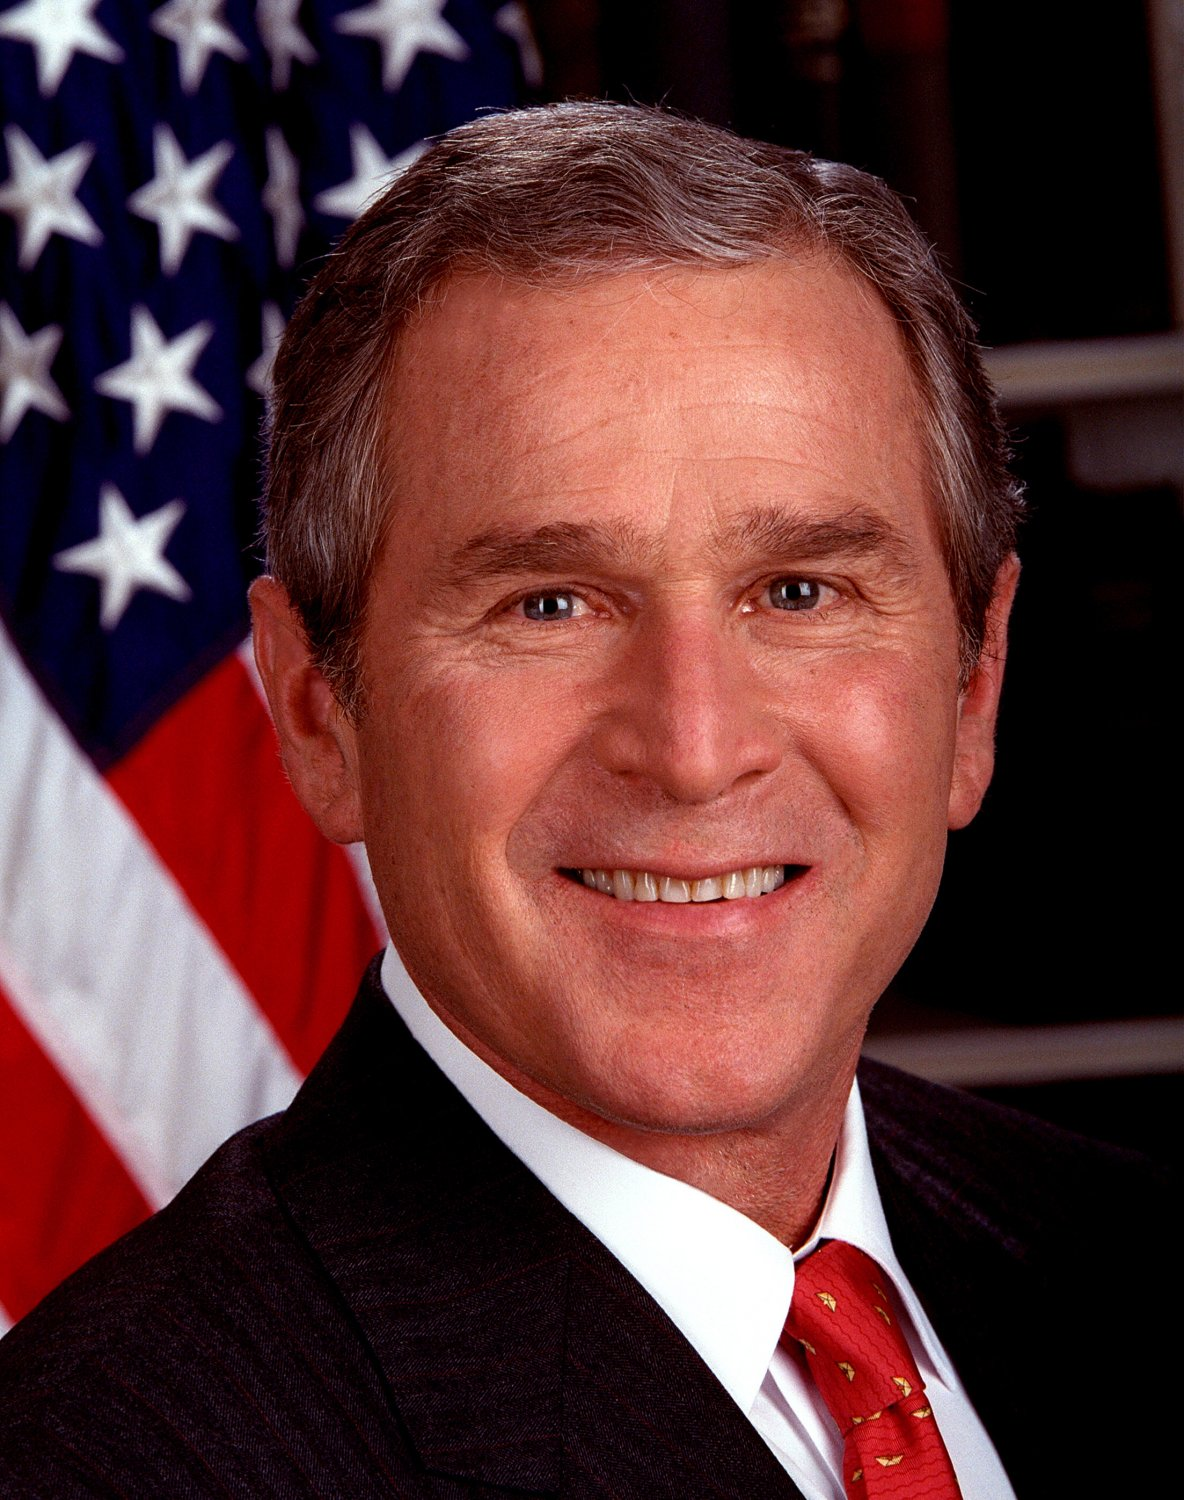 PRESIDENT GEORGE W. BUSH OFFICIAL PORTRAIT - 8X10 PHOTO (EP-464)